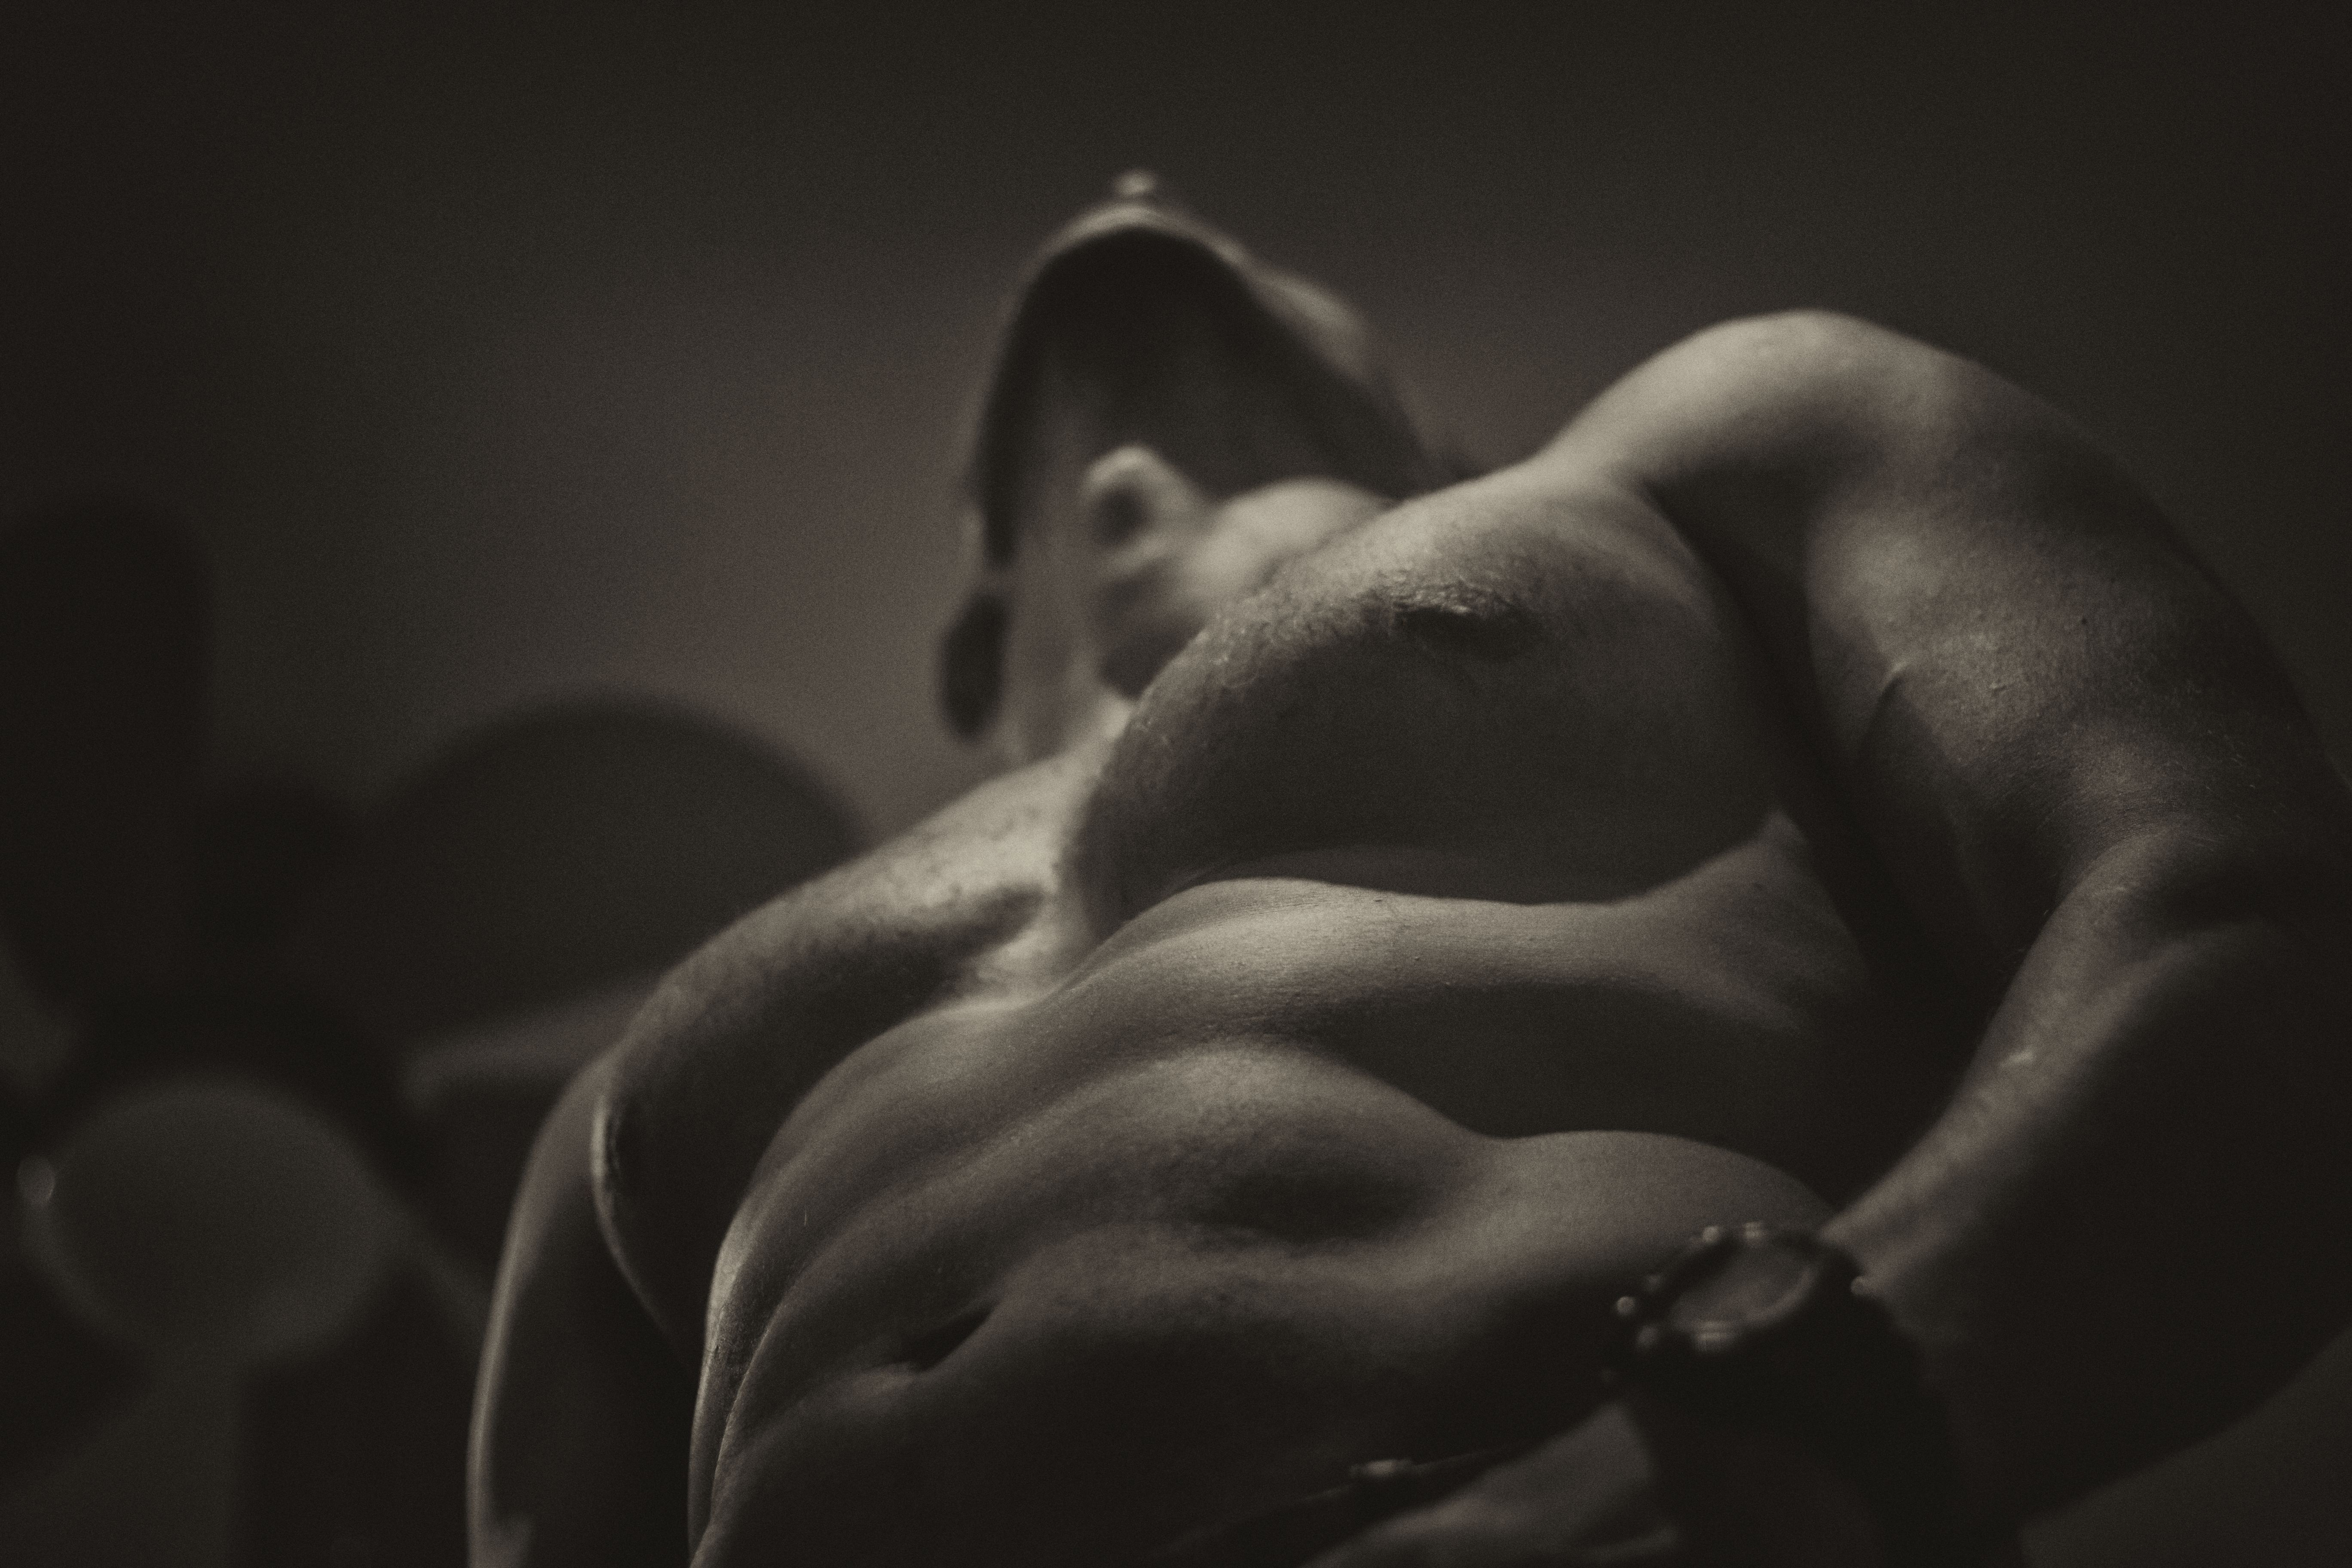 Relax in the Masculine energies of a male to male massage